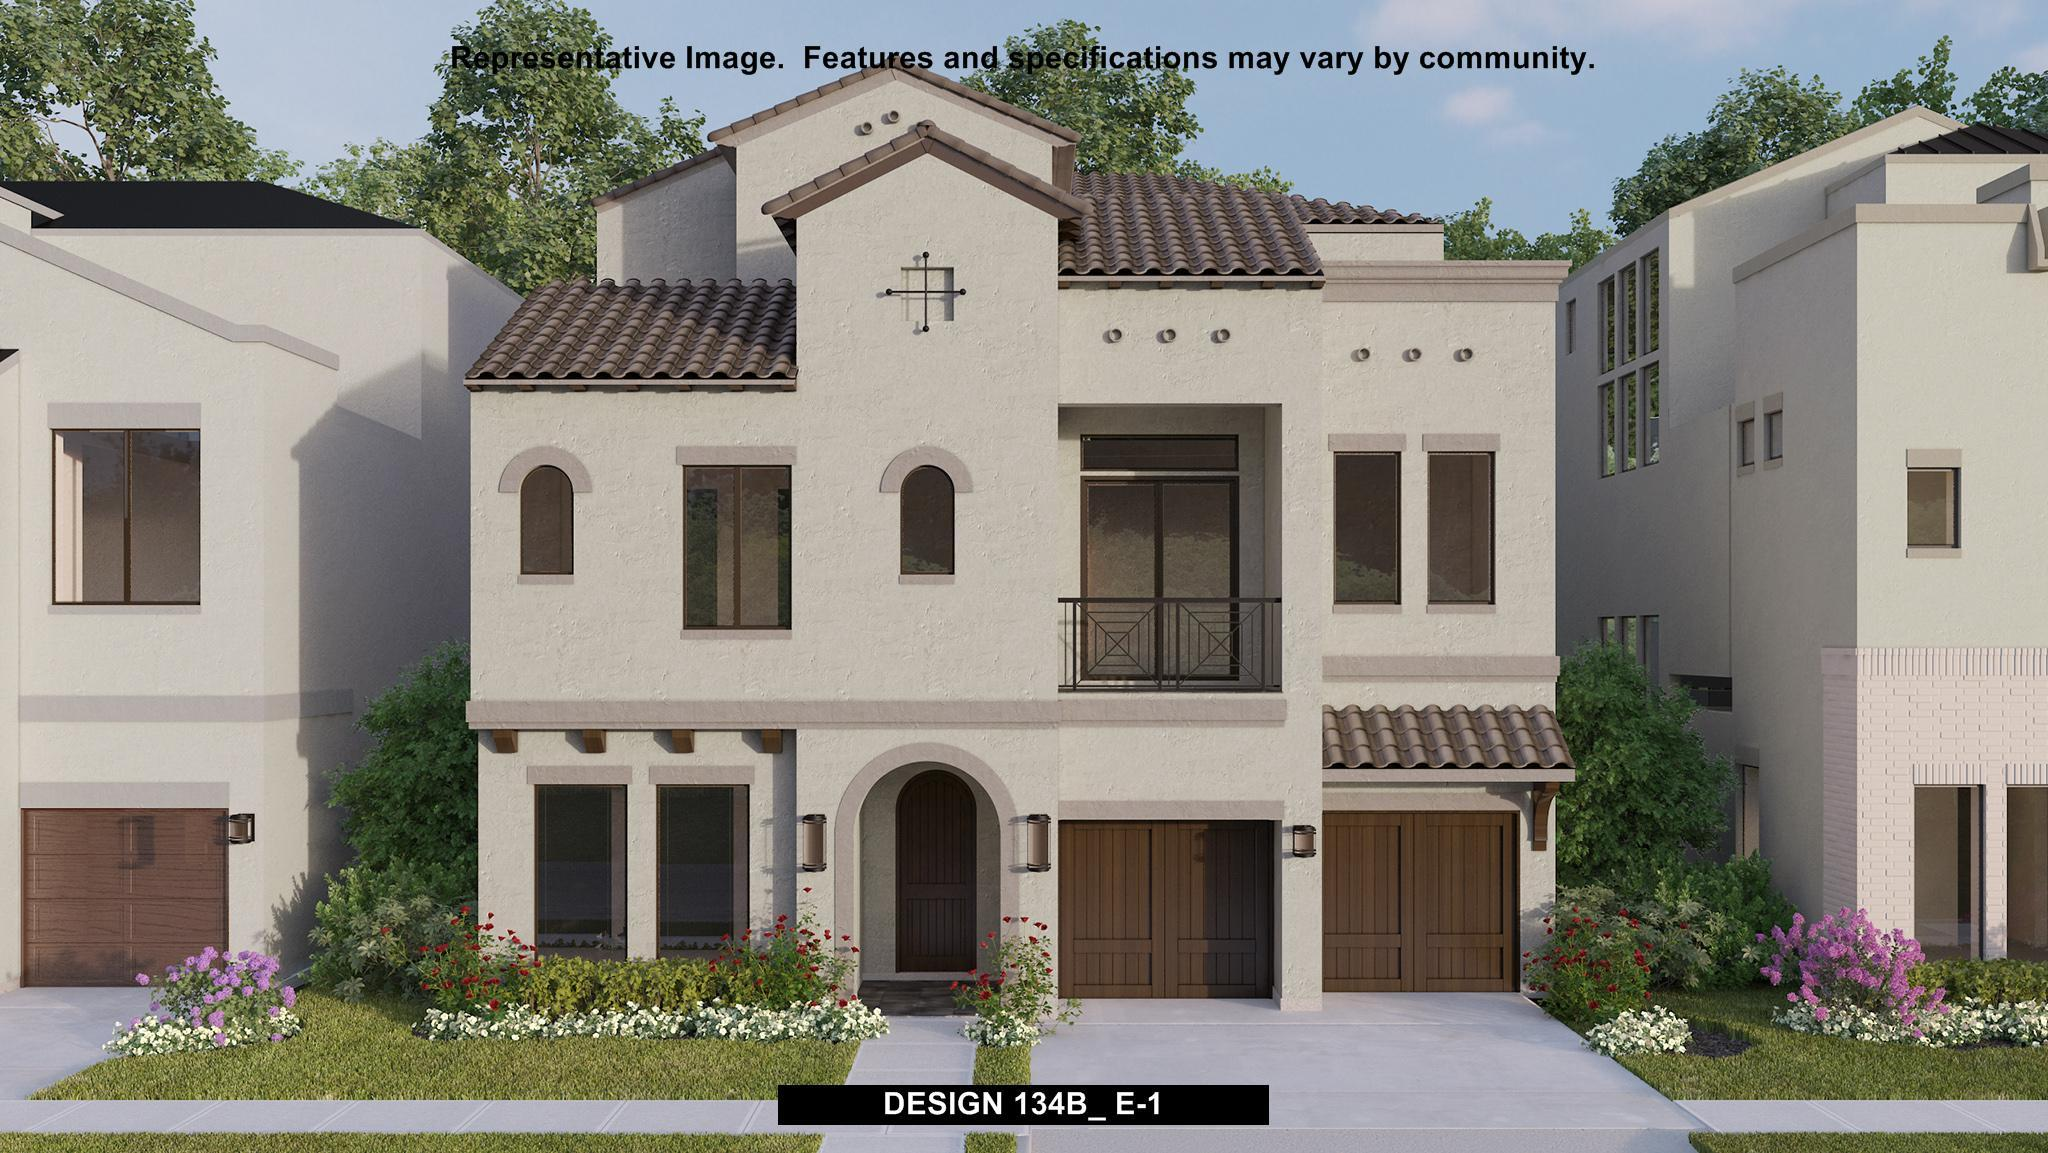 Single Family for Active at Villas At Legacy West - 134b 6121 Echelon Way Plano, Texas 75024 United States